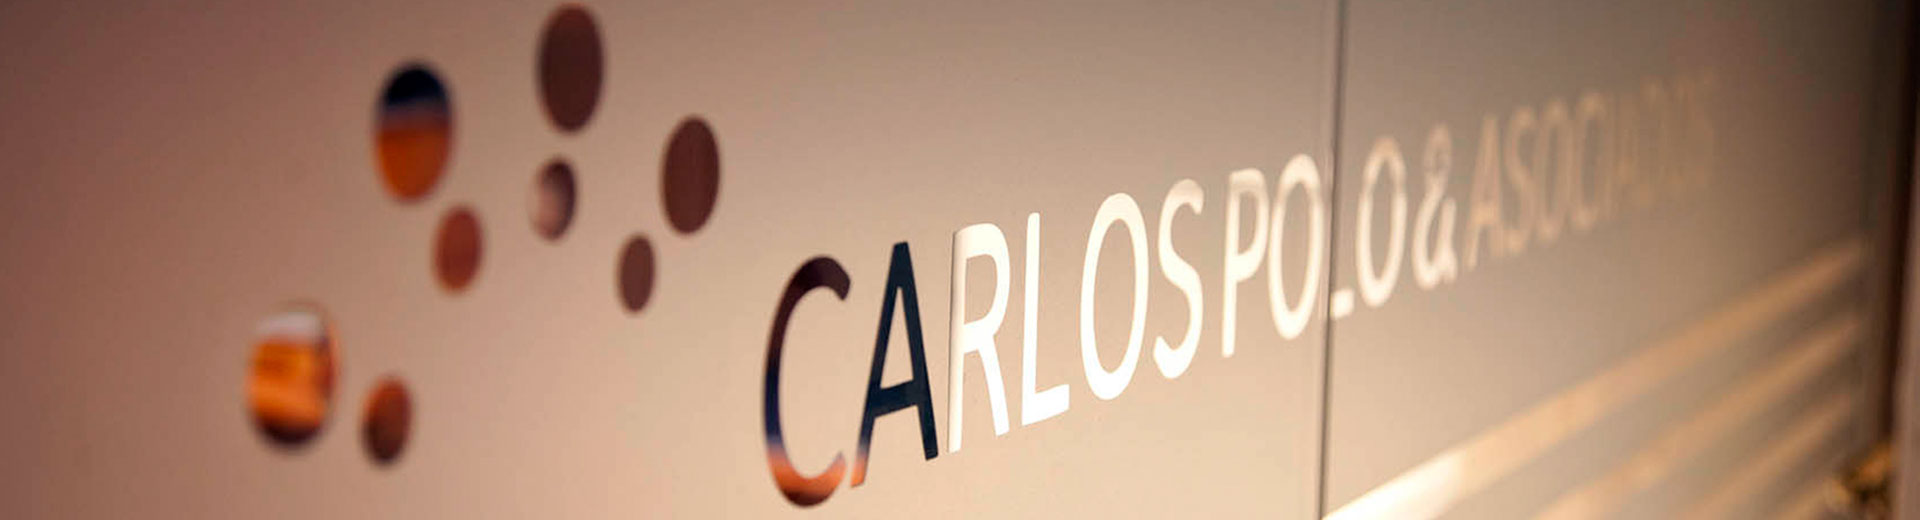 Logotipo Despacho Carlos Polo